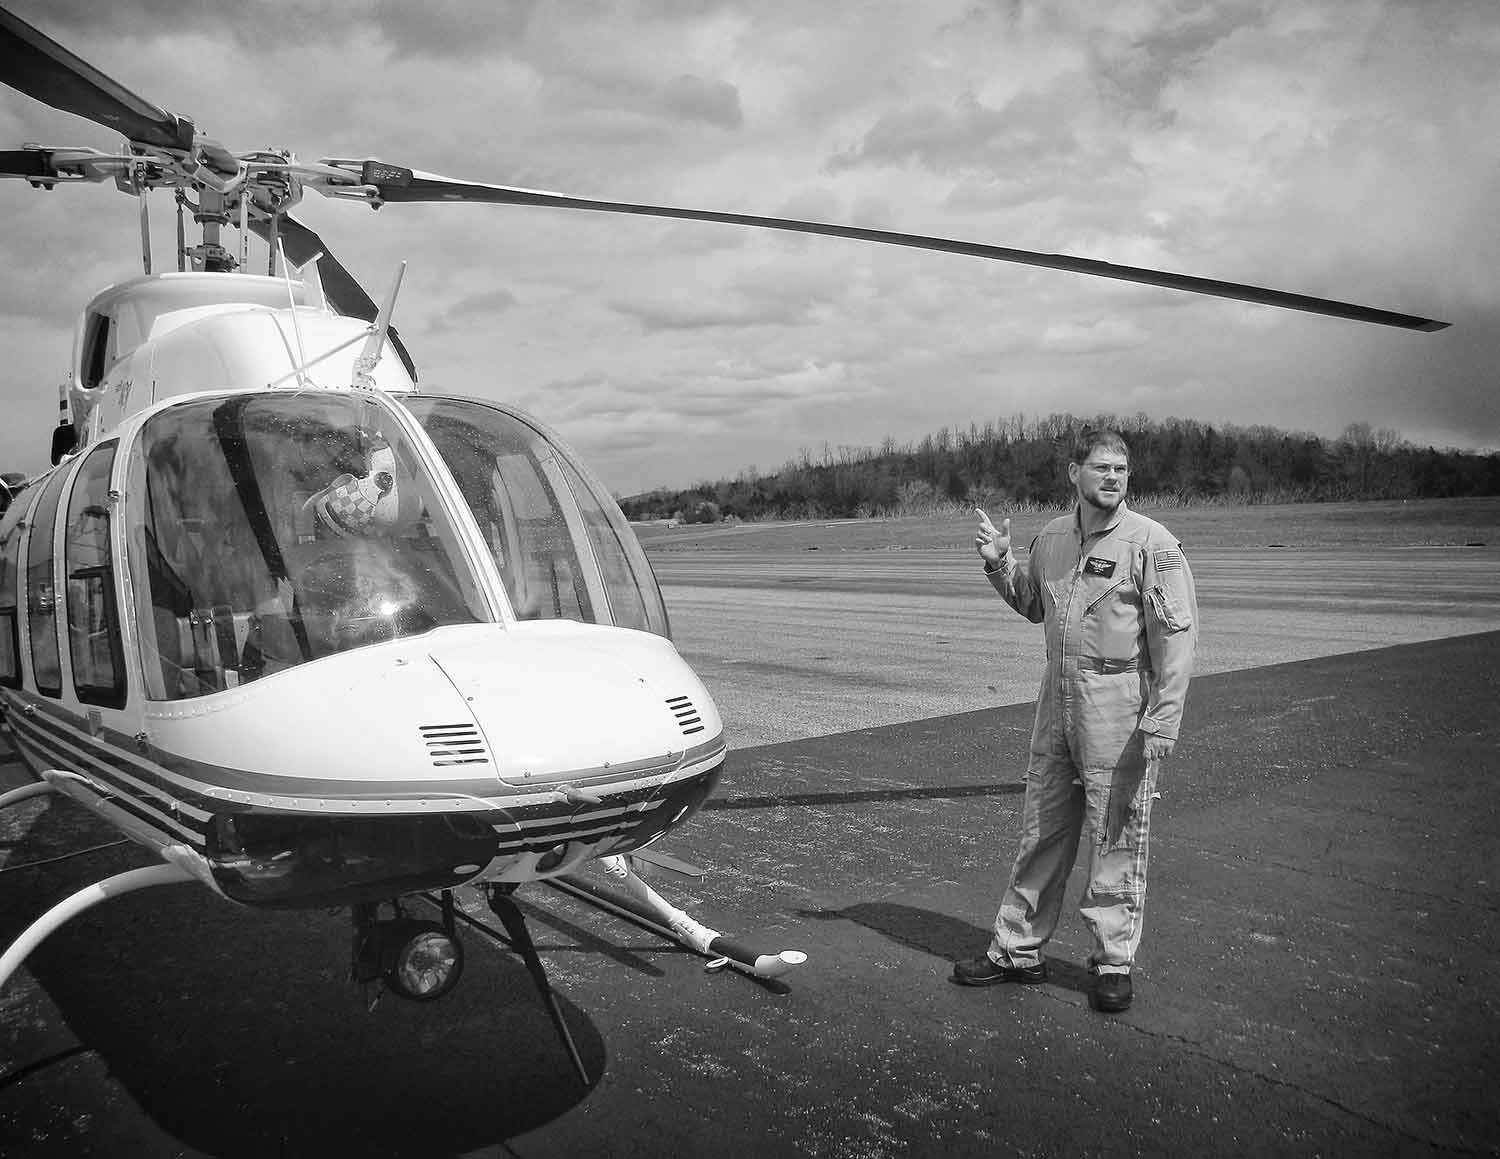 Terry Neal speaks on the importance of providing emergency care for remote areas of East Tennessee. photo by Chet Guthrie - 2016